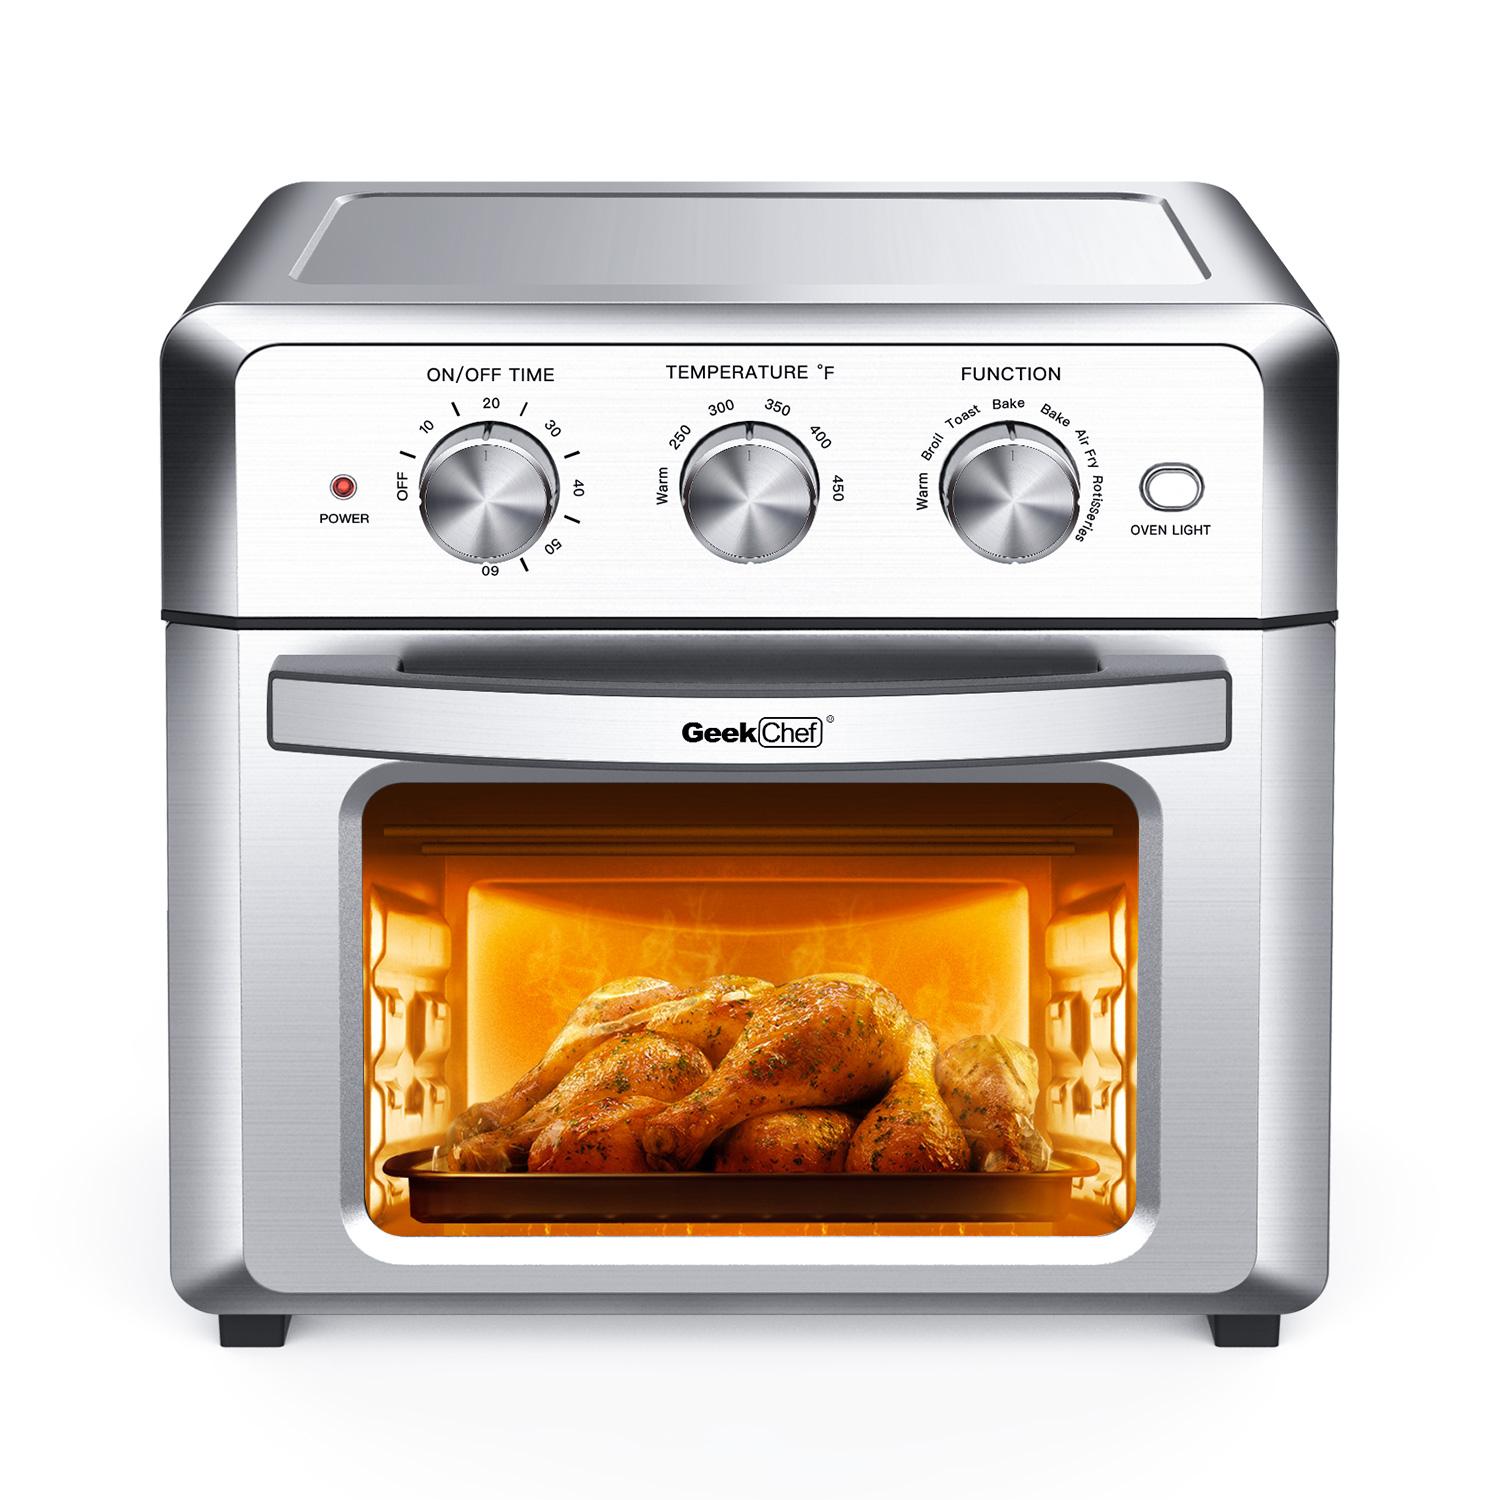 18L空气烤箱,空气炸锅Geek Chef Air Fryer Toaster Oven, 4 Slice 19QT Convection Airfryer Countertop Oven, Roast, Bake, Broil, Reheat, Fry Oil-Free, Cooking 4 Accessories Included, Stainless Steel,1500W